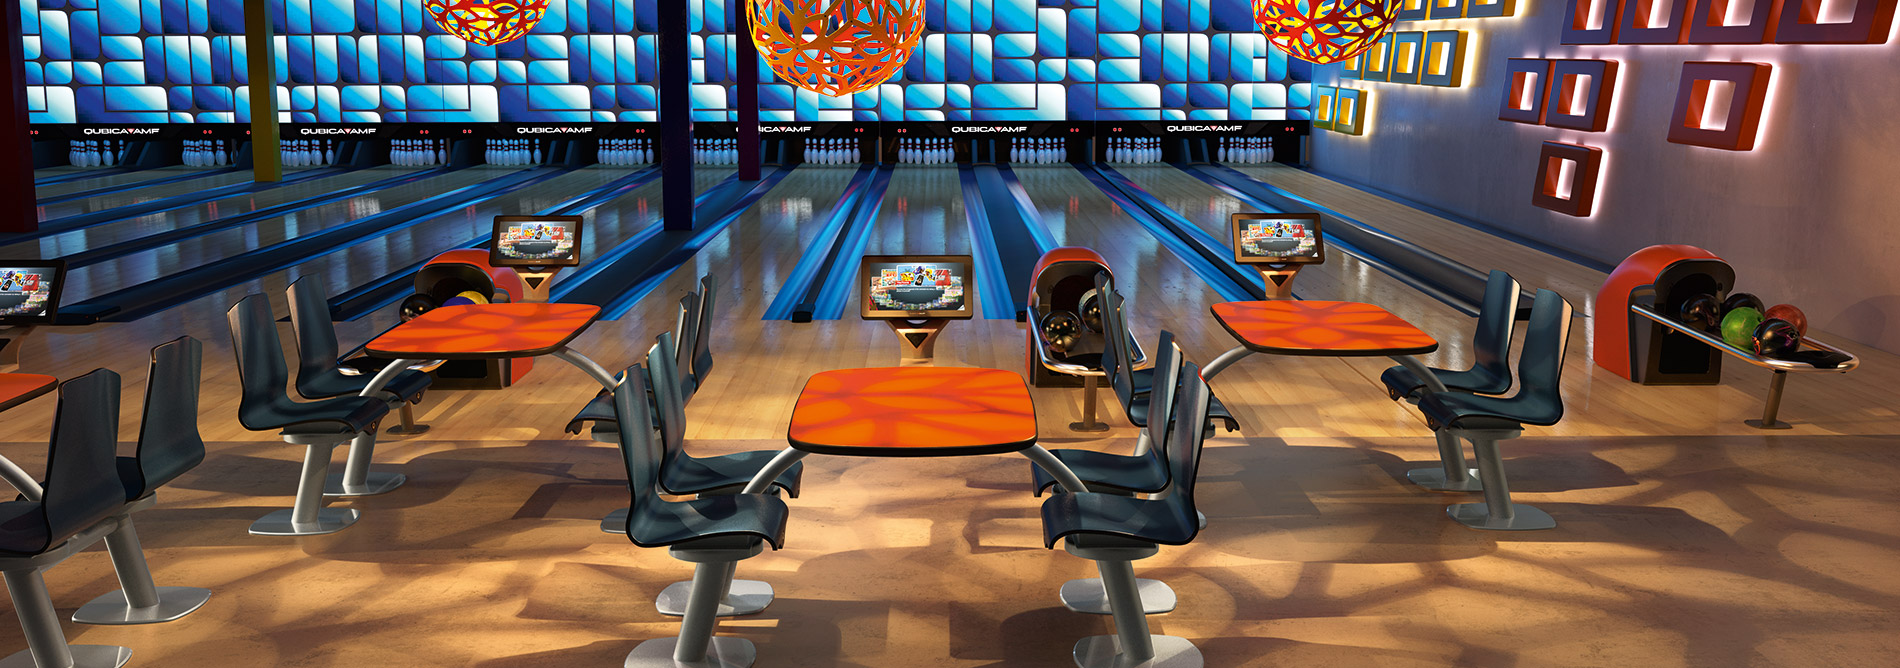 Bowling-QubicaAMF-furniture-harmony-energy-banner.jpg